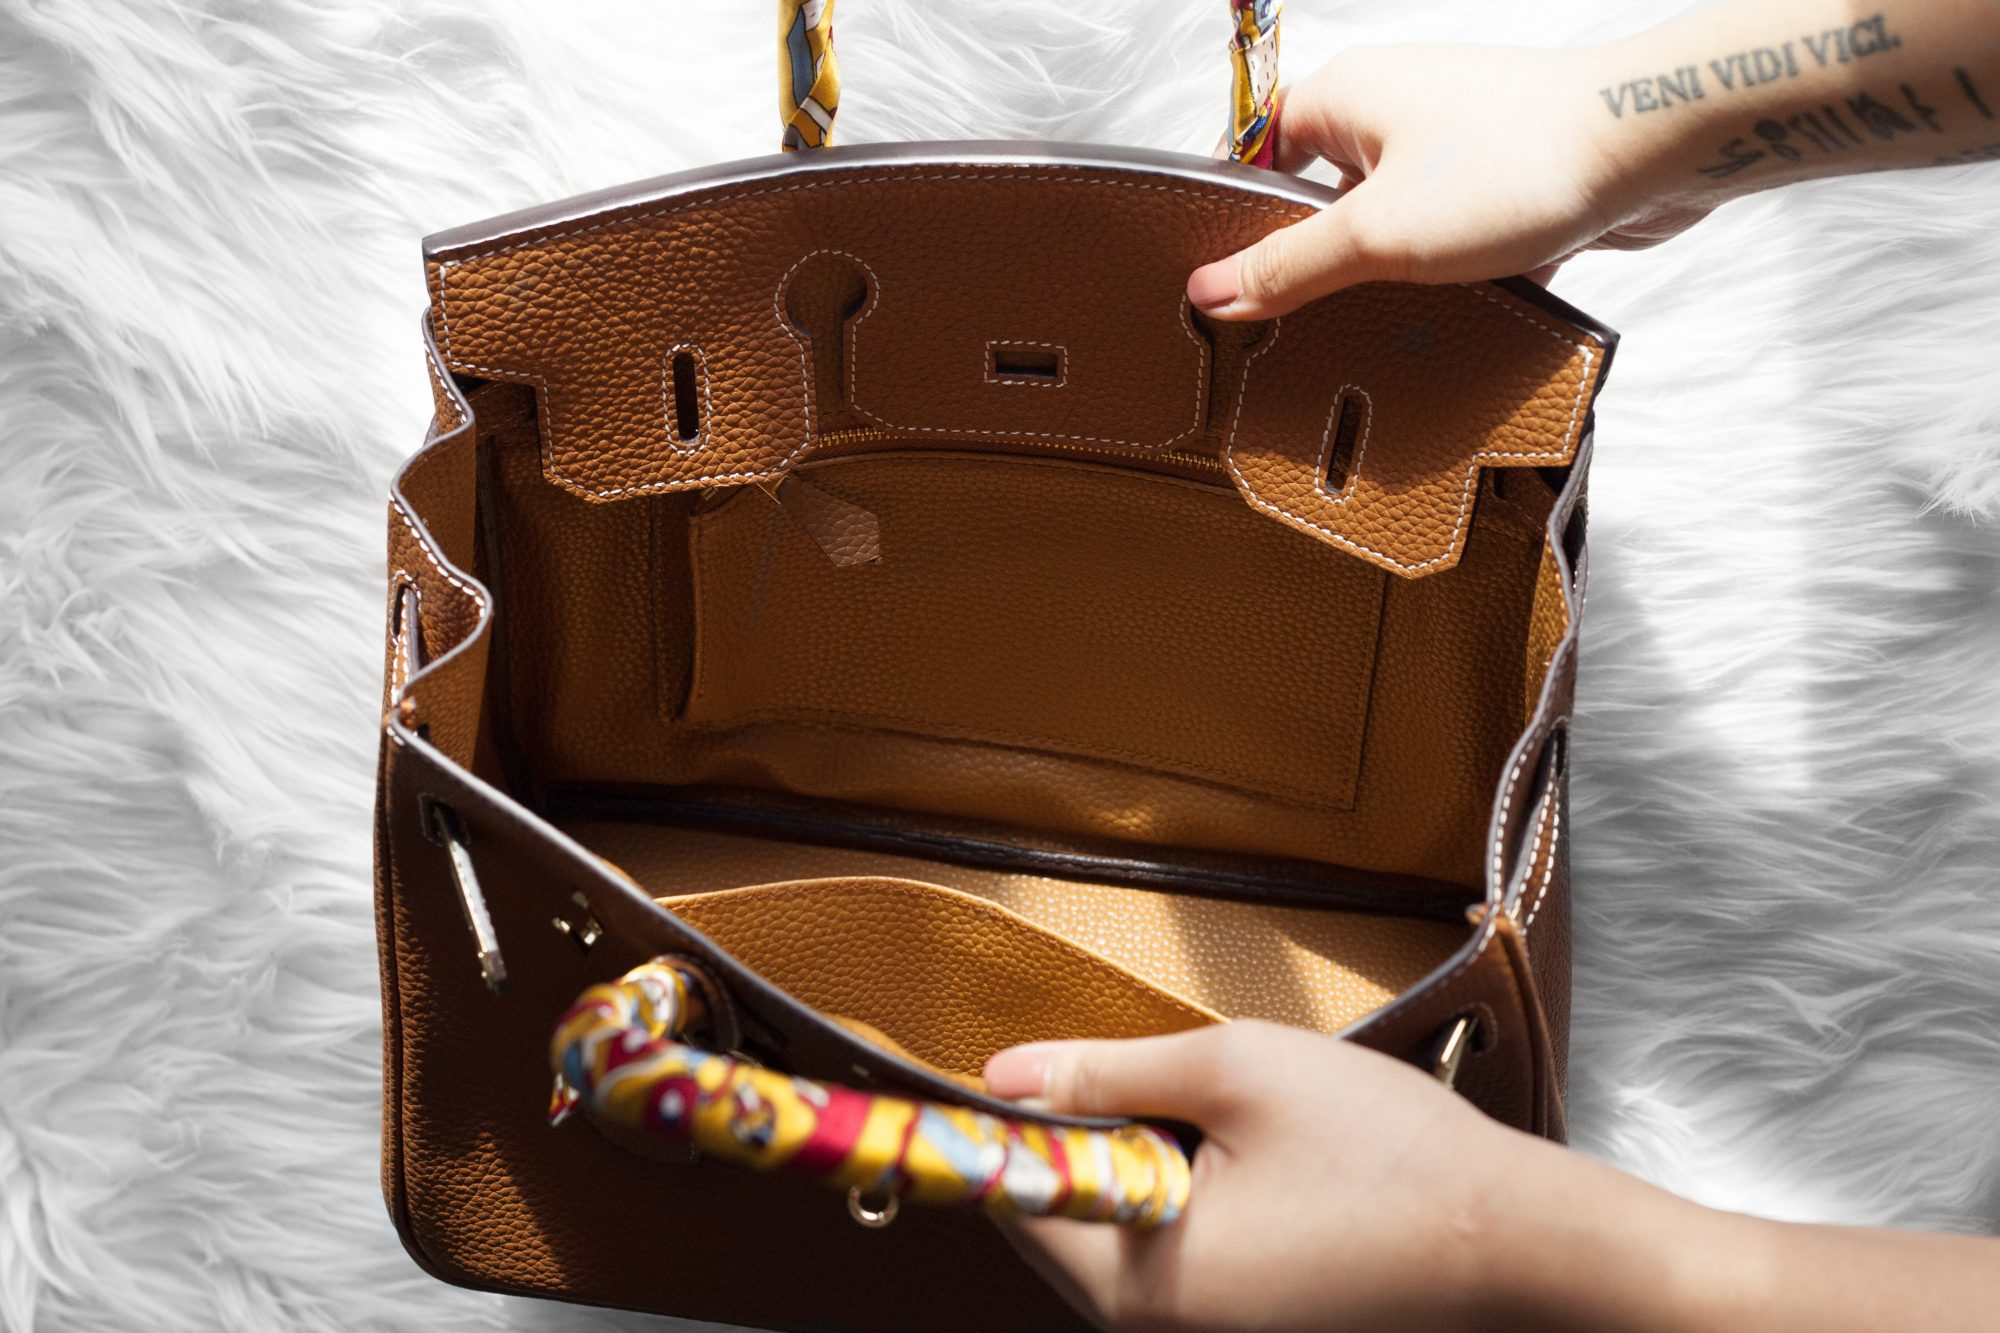 a0179bc5f94a This tan bag is a gorgeous designer dupe of the Hermés Birkin.